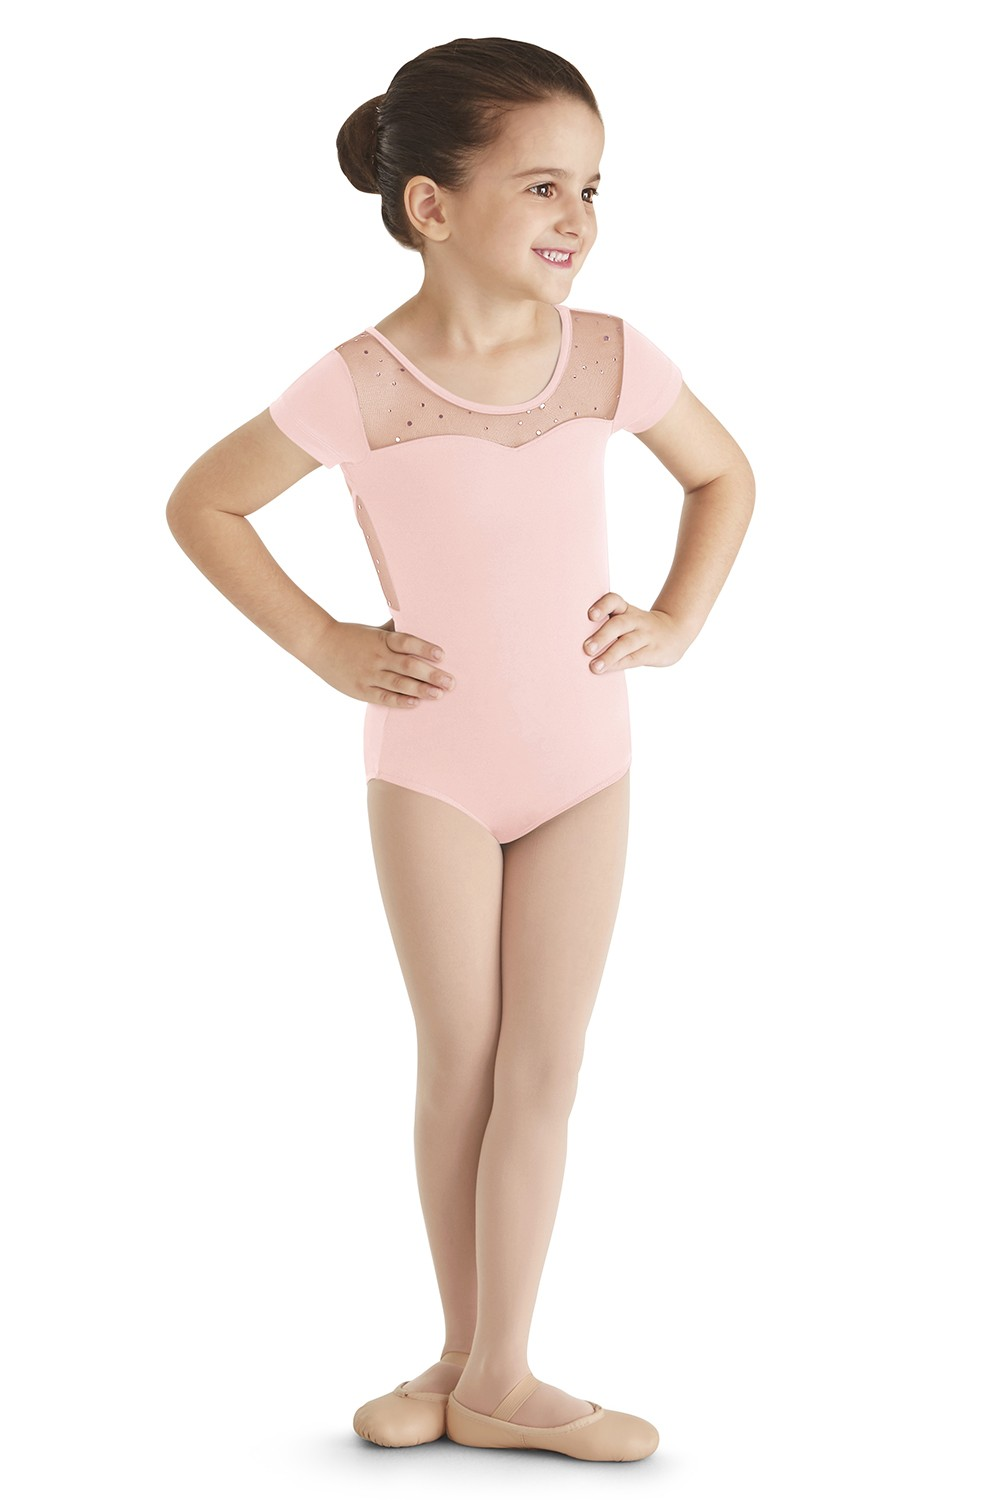 Cap Sleeve Leotard Children's Dance Leotards